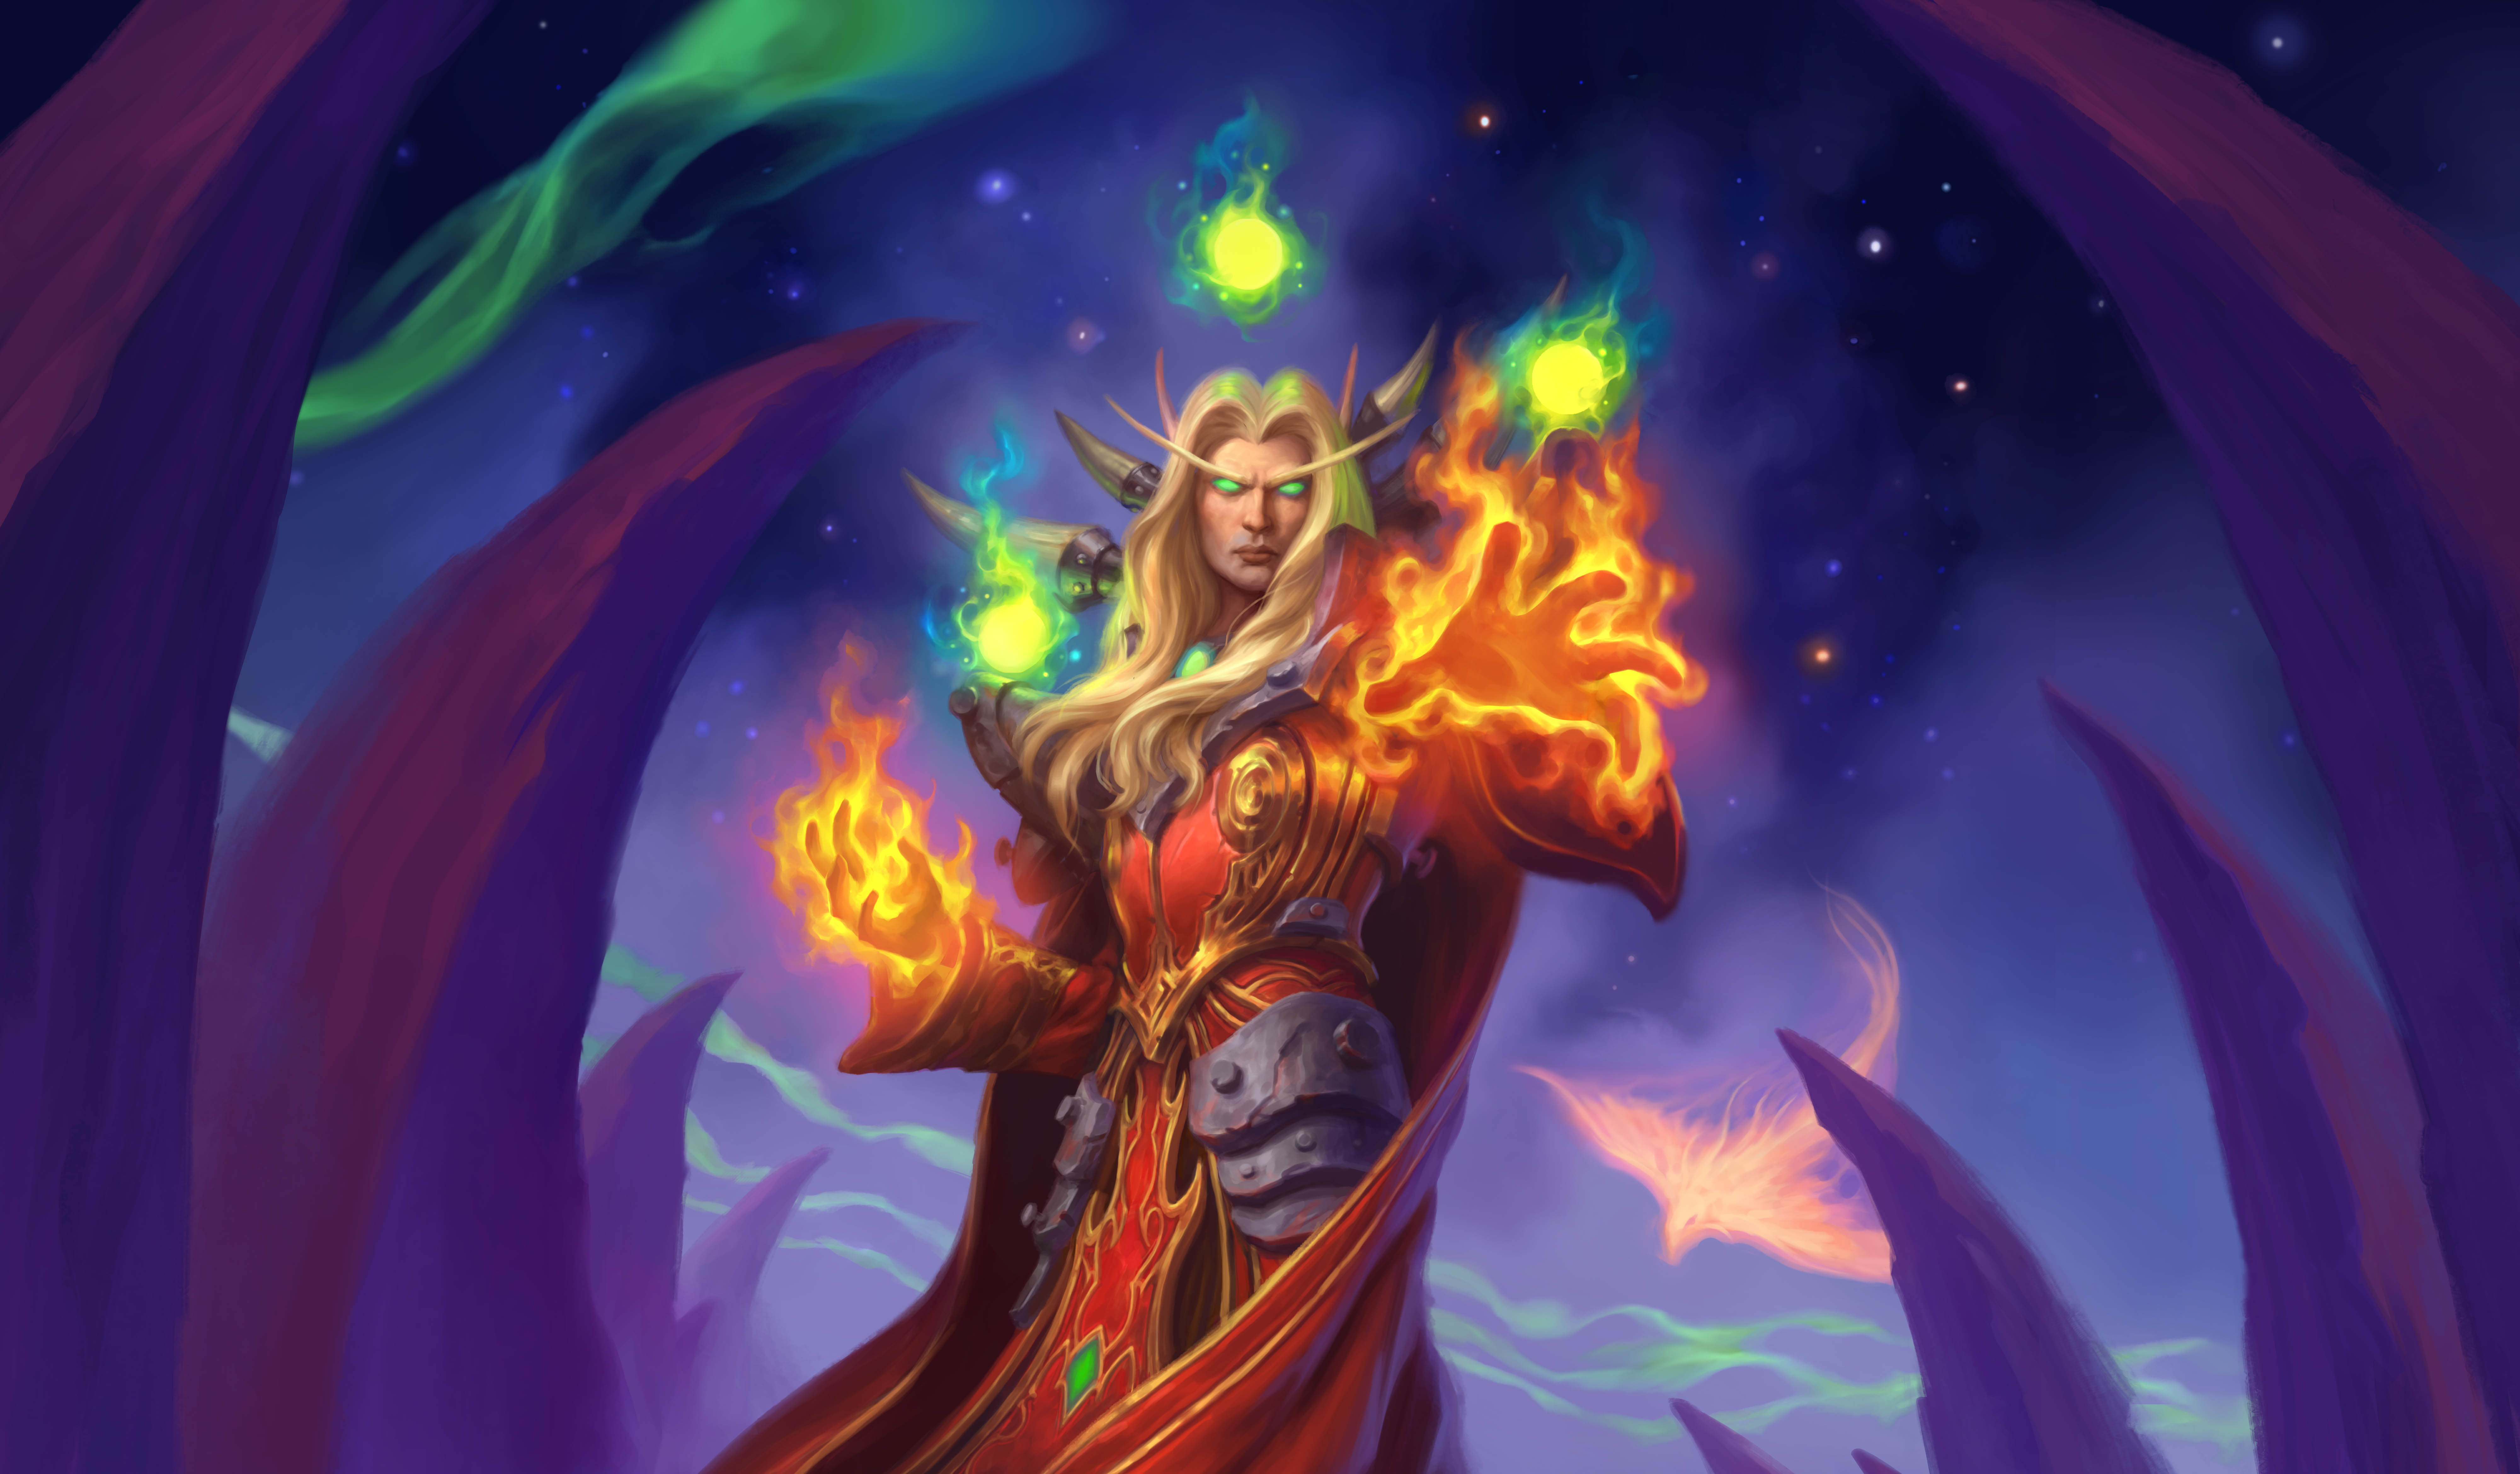 Hearthstone's Patch 17.0.2 is live on all platforms